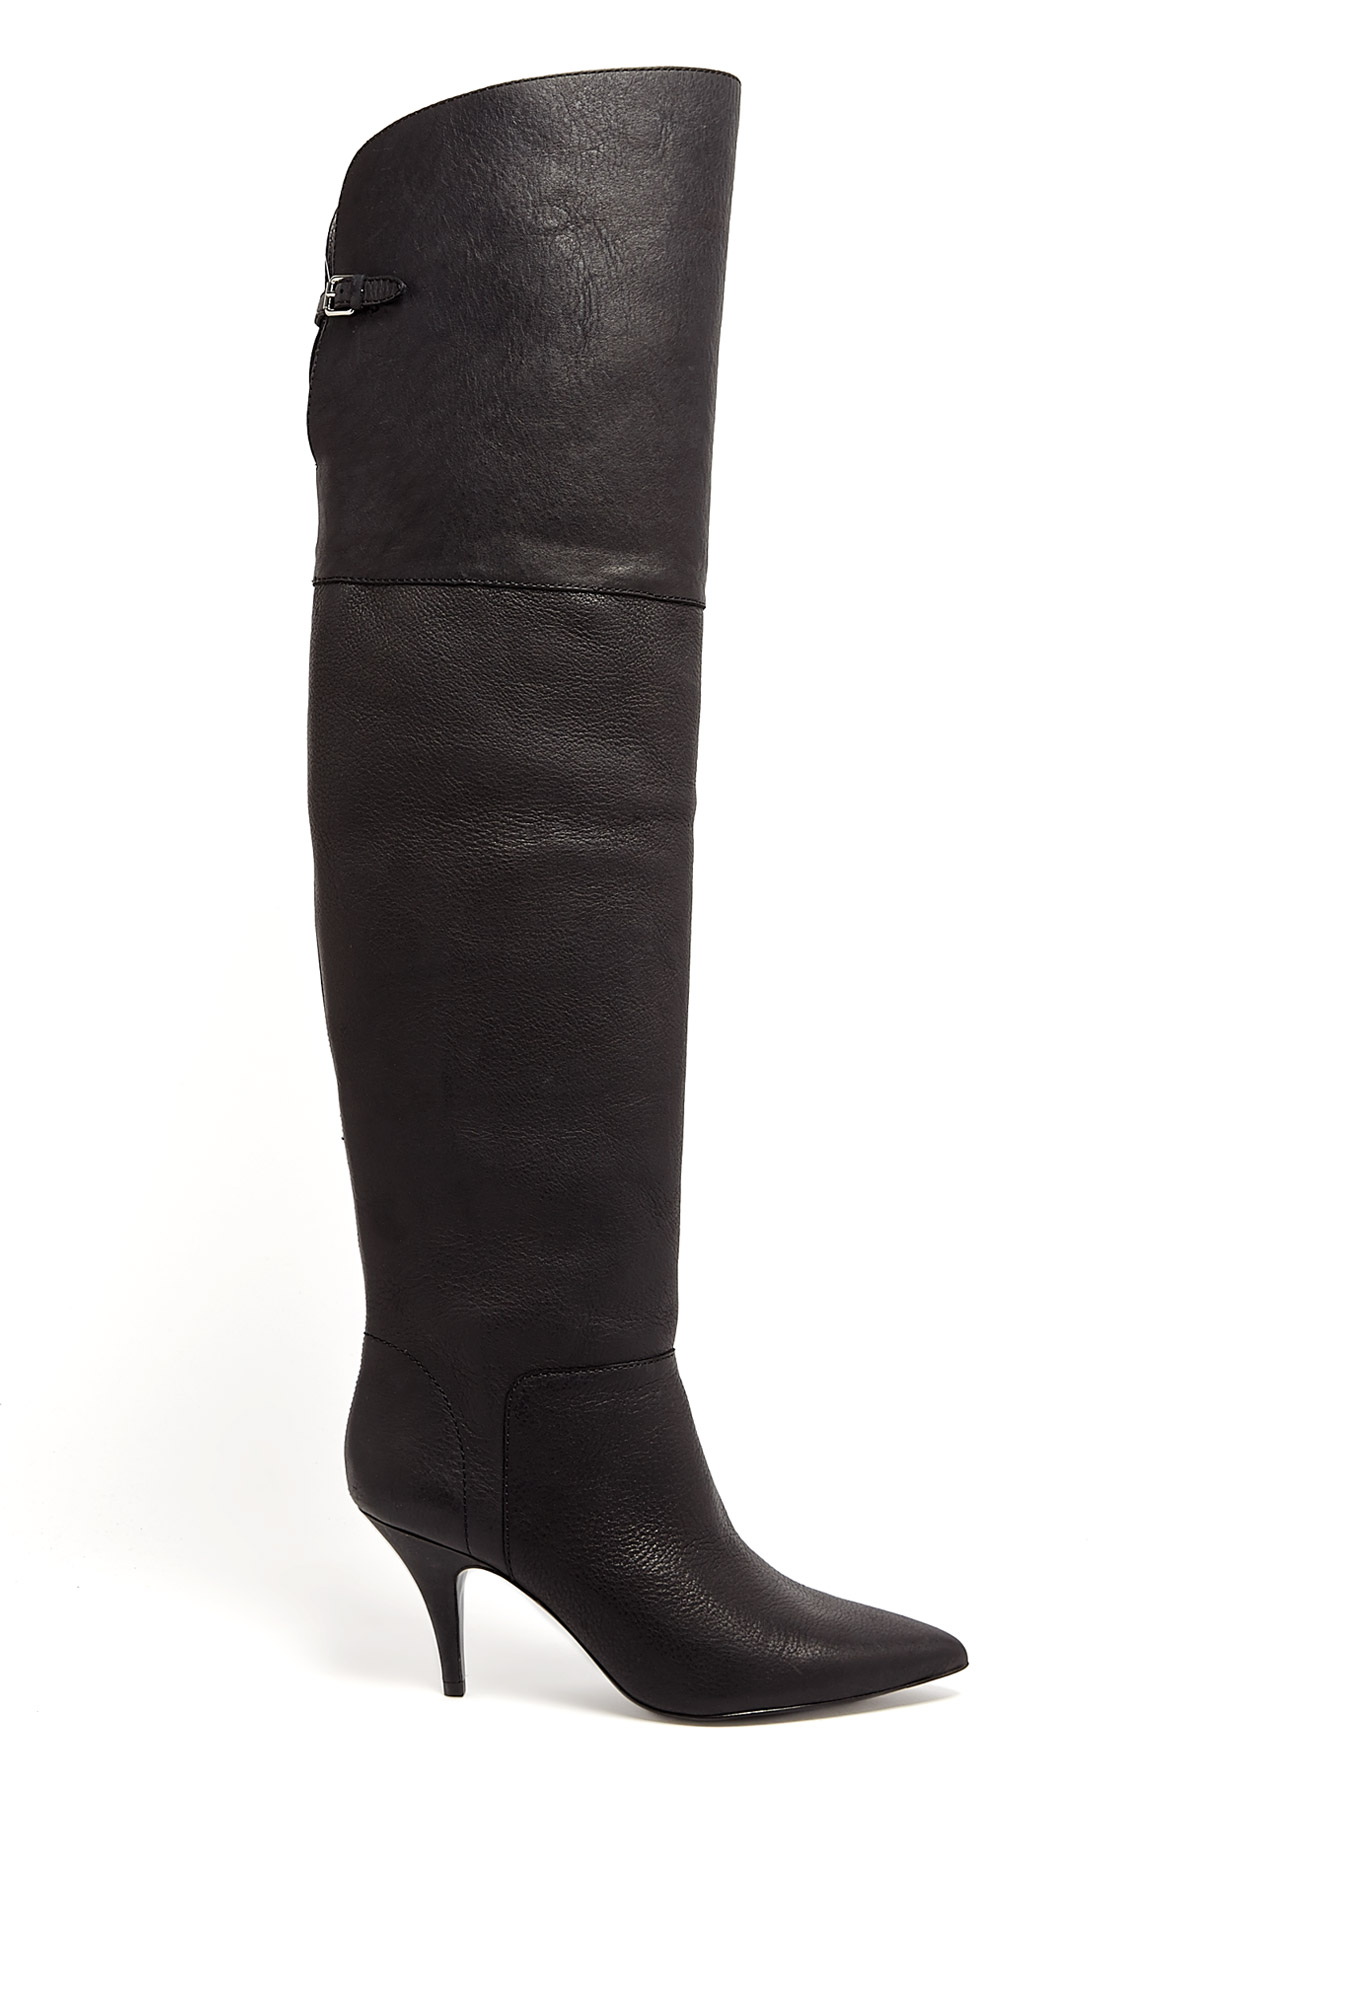 3.1 Phillip Lim  | Kitty Thigh High Mid Heel Pointed Boot by 3.1 Phillip Lim